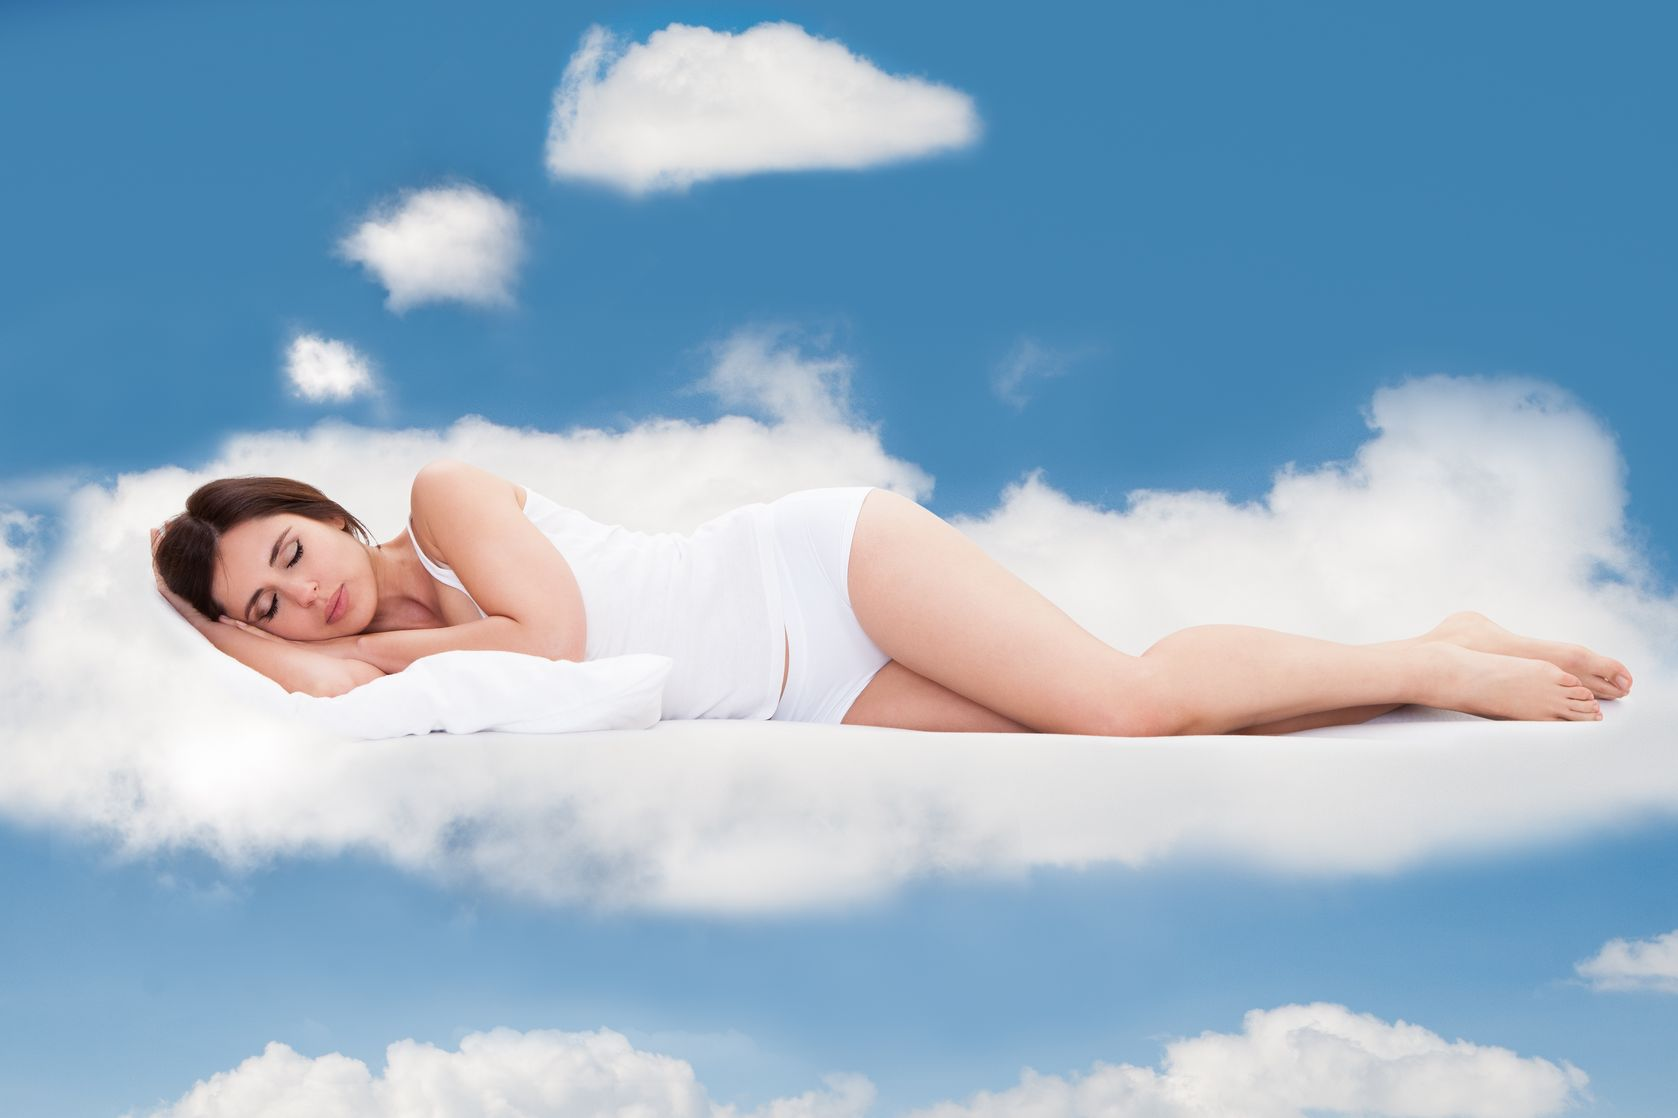 10 Surprising Things You Probably Don't Know About Dreaming